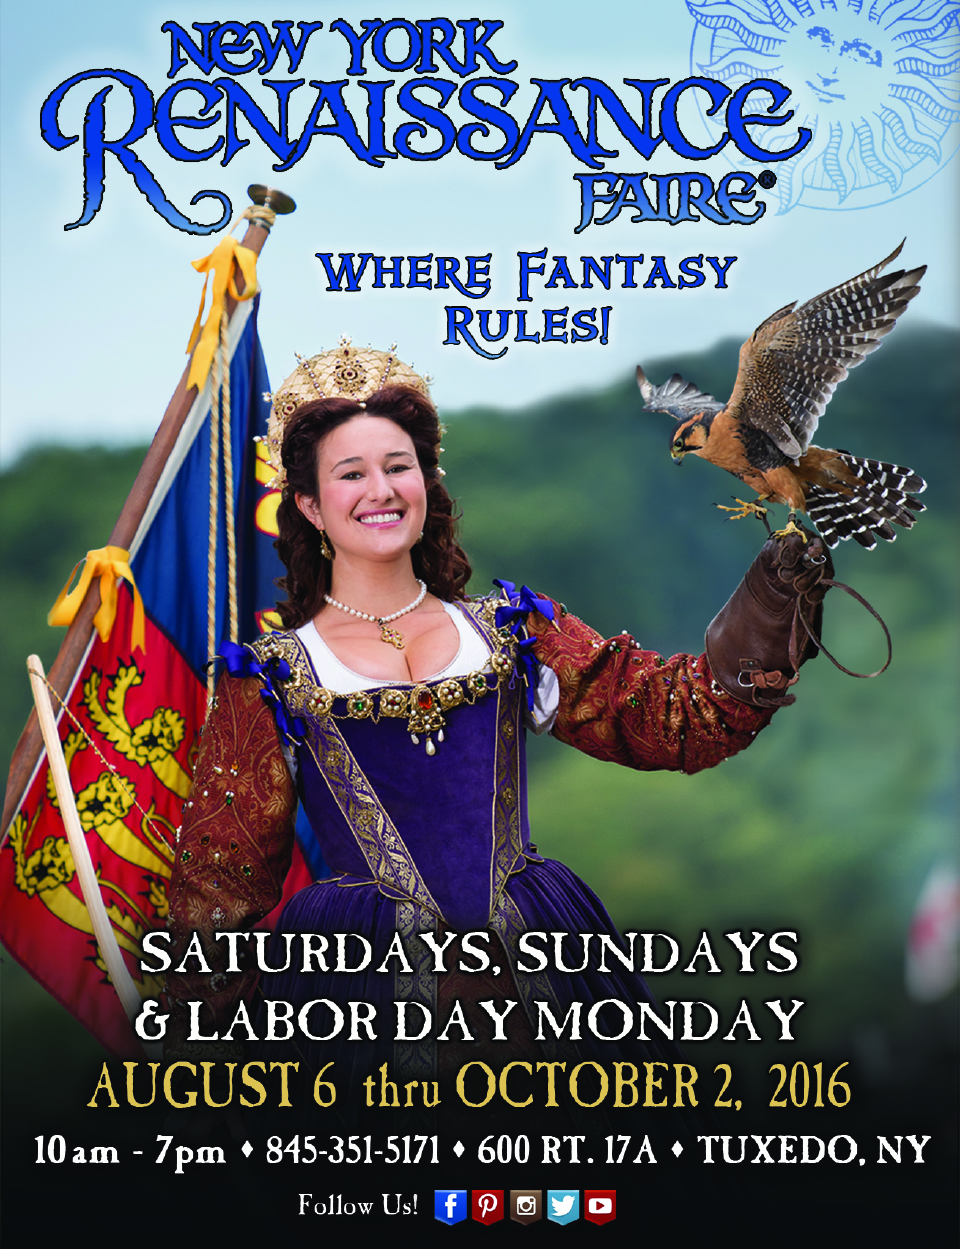 New York Renaissance Faire. Held from August 6th-October 2nd in Tuxedo, NY